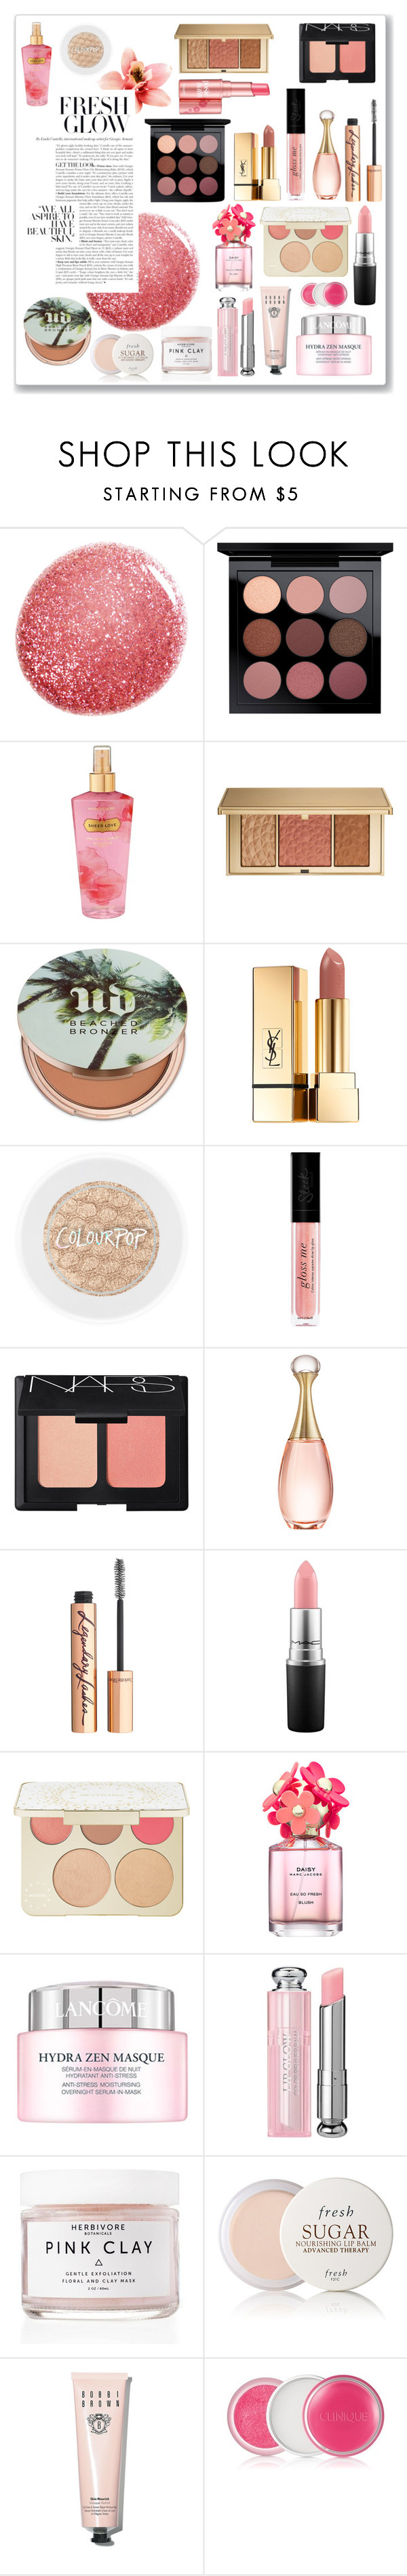 """""""Sweet Pinkish"""" by missamiera ❤ liked on Polyvore featuring beauty, NARS Cosmetics, MAC Cosmetics, Victoria's Secret, Estée Lauder, Urban Decay, Yves Saint Laurent, Christian Dior, Charlotte Tilbury and Becca"""